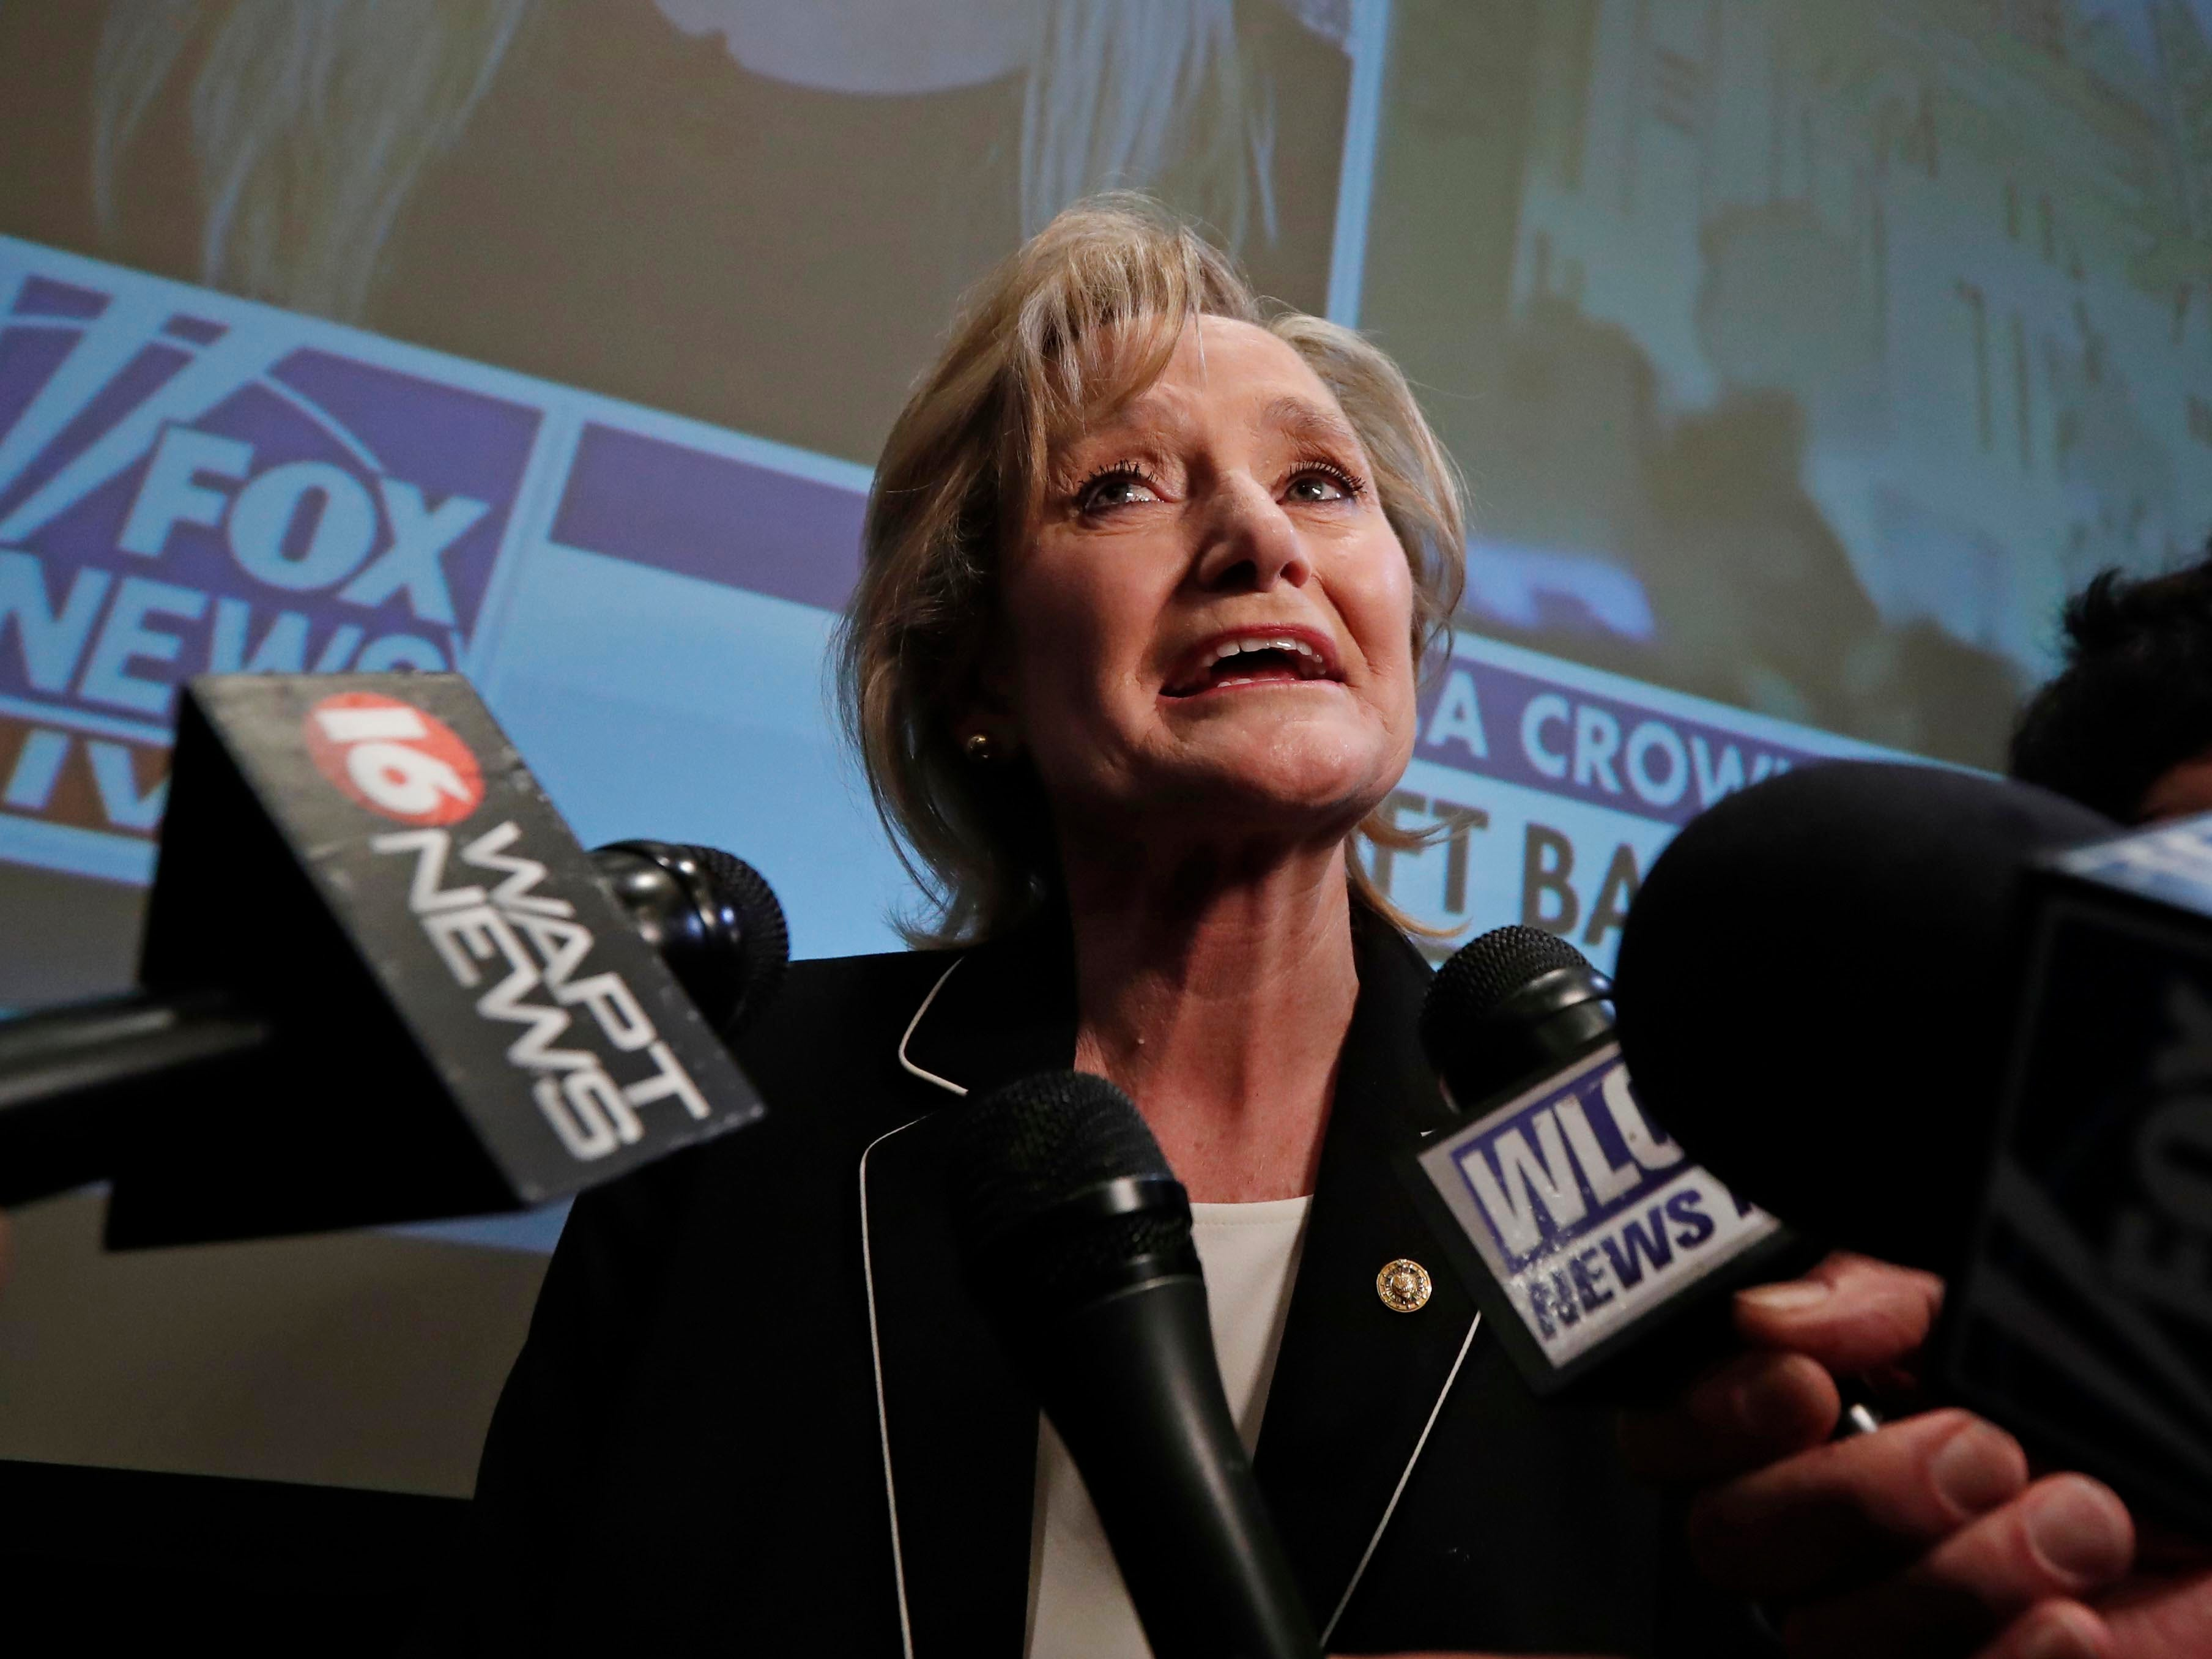 Republican U.S. Sen. Cindy Hyde-Smith speaks to reporters as she celebrates her runoff win over Democrat Mike Espy in Jackson, Miss., Tuesday, Nov. 27, 2018. Hyde-Smith will now serve the final two years of retired Republican Sen. Thad Cochran's six year term. (AP Photo/Rogelio V. Solis)